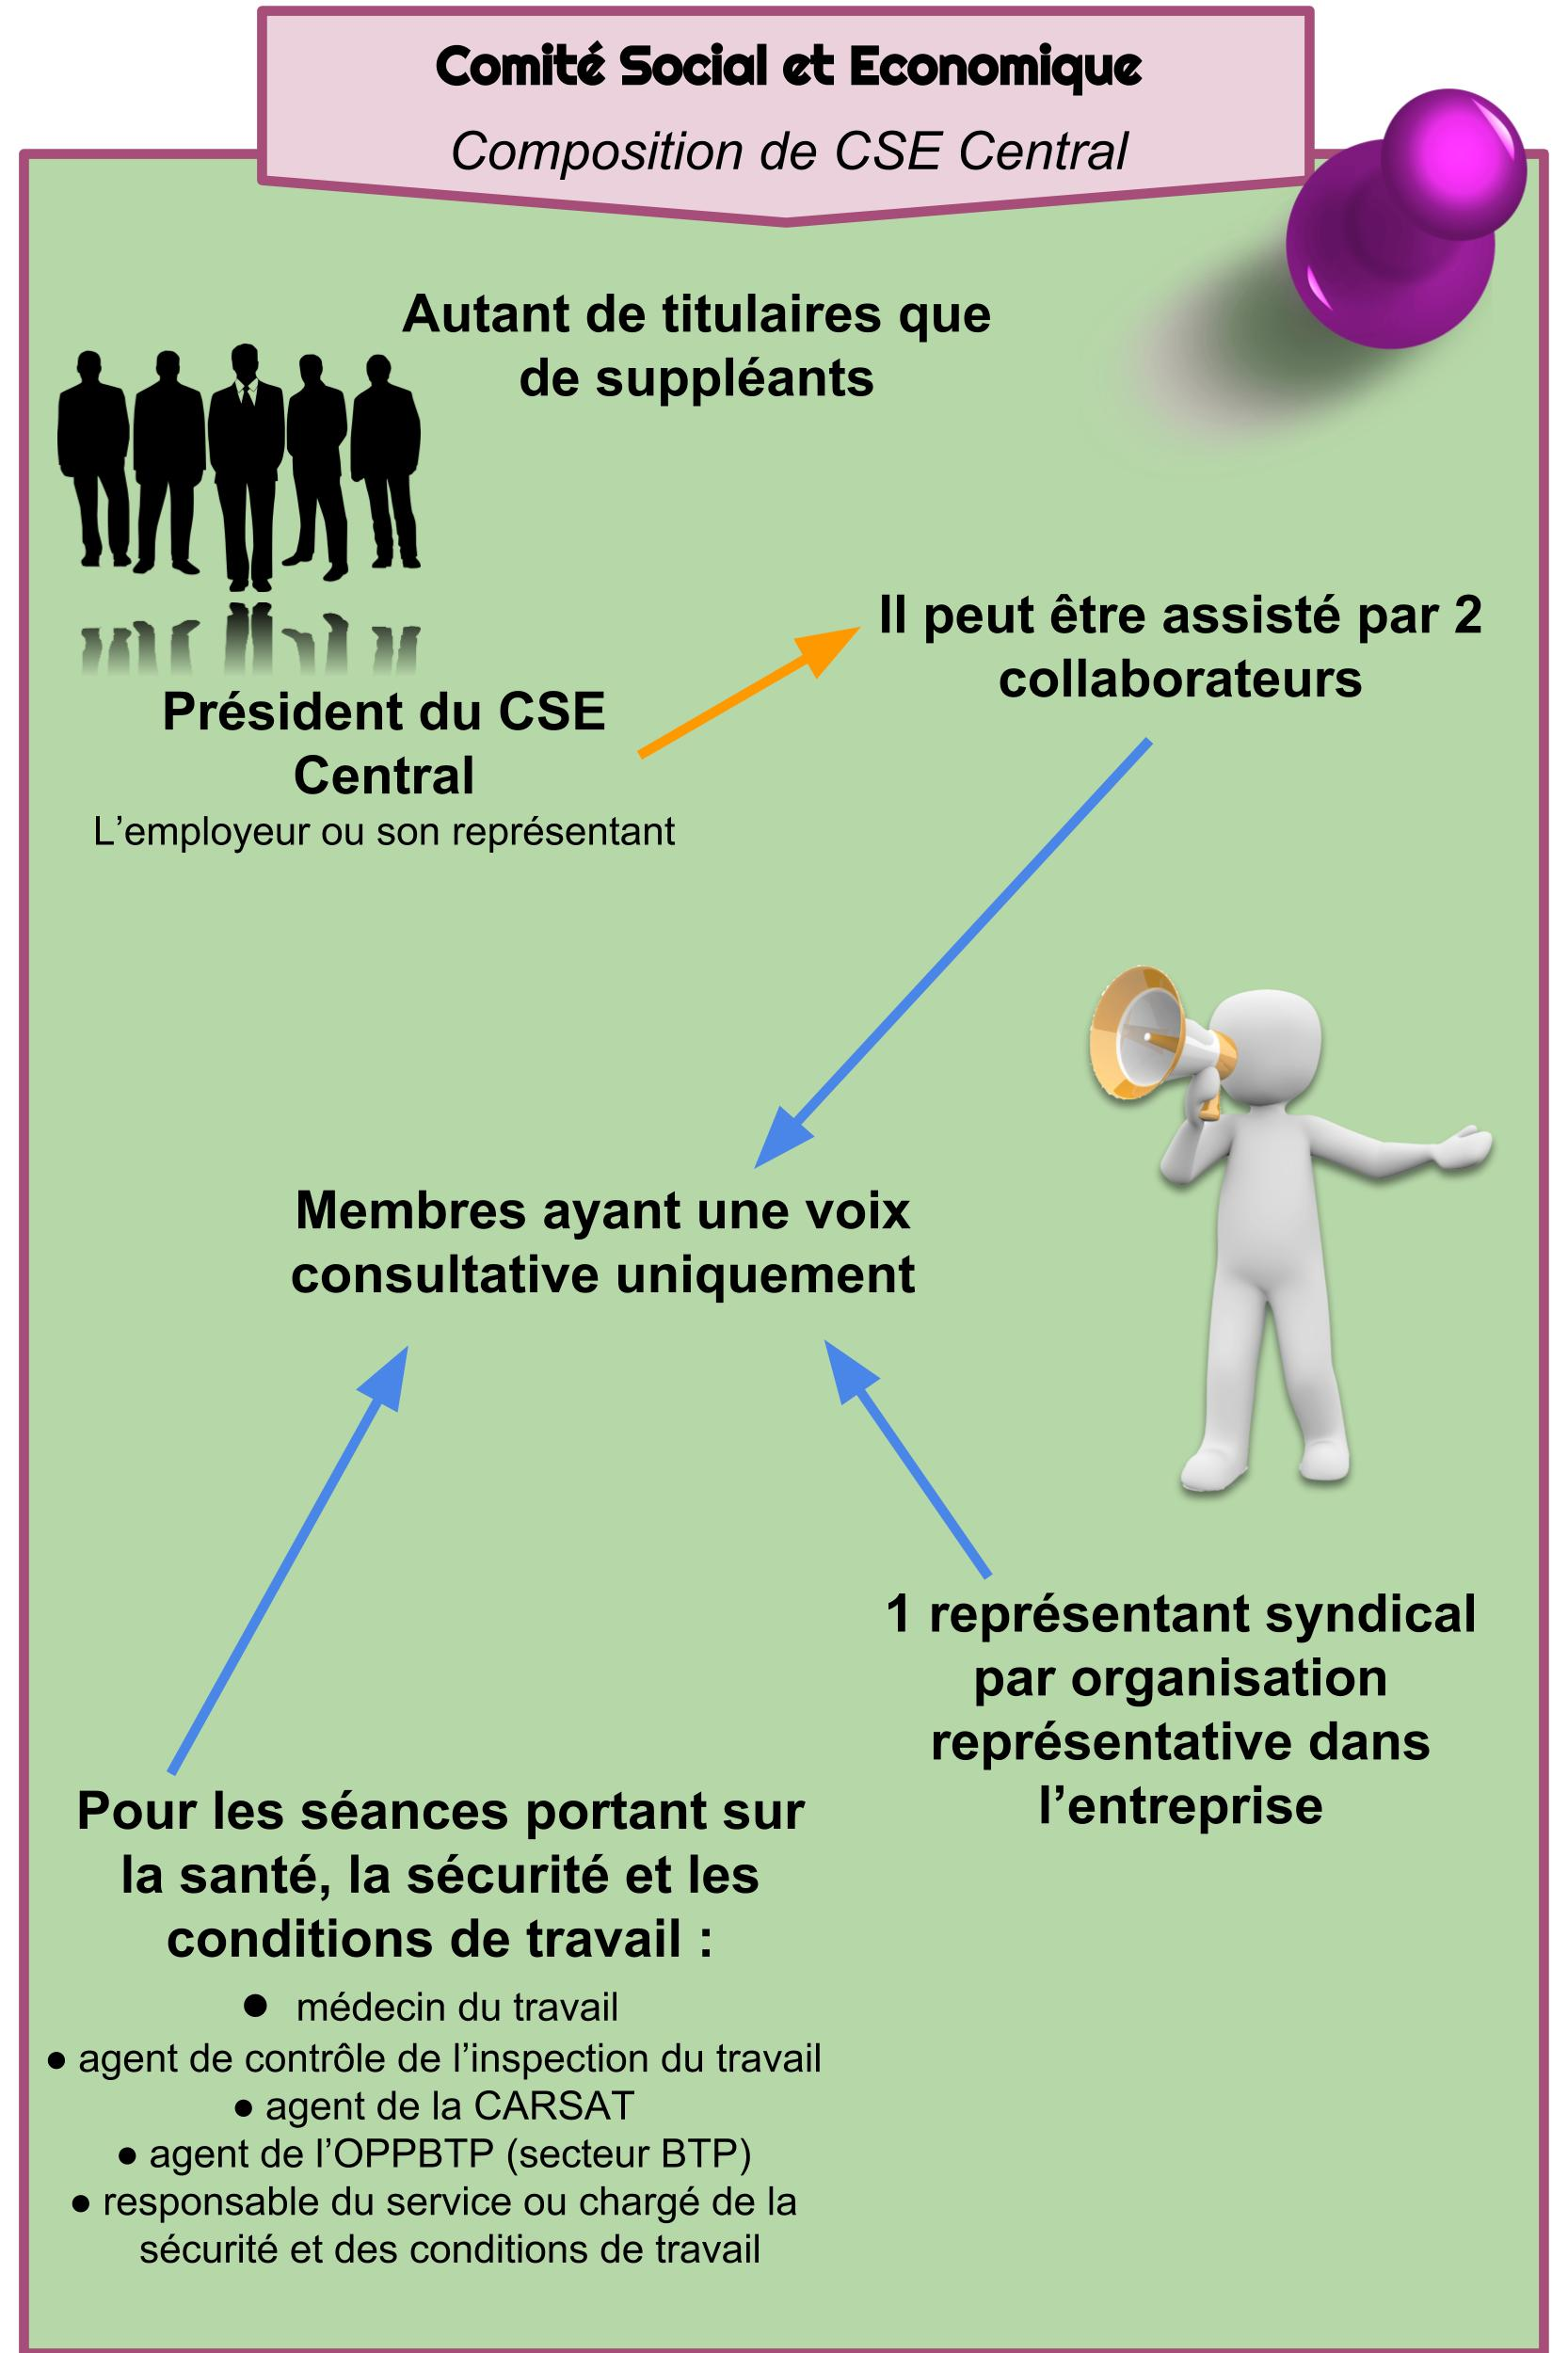 Comité Social et Economique - Composition de CSE Central